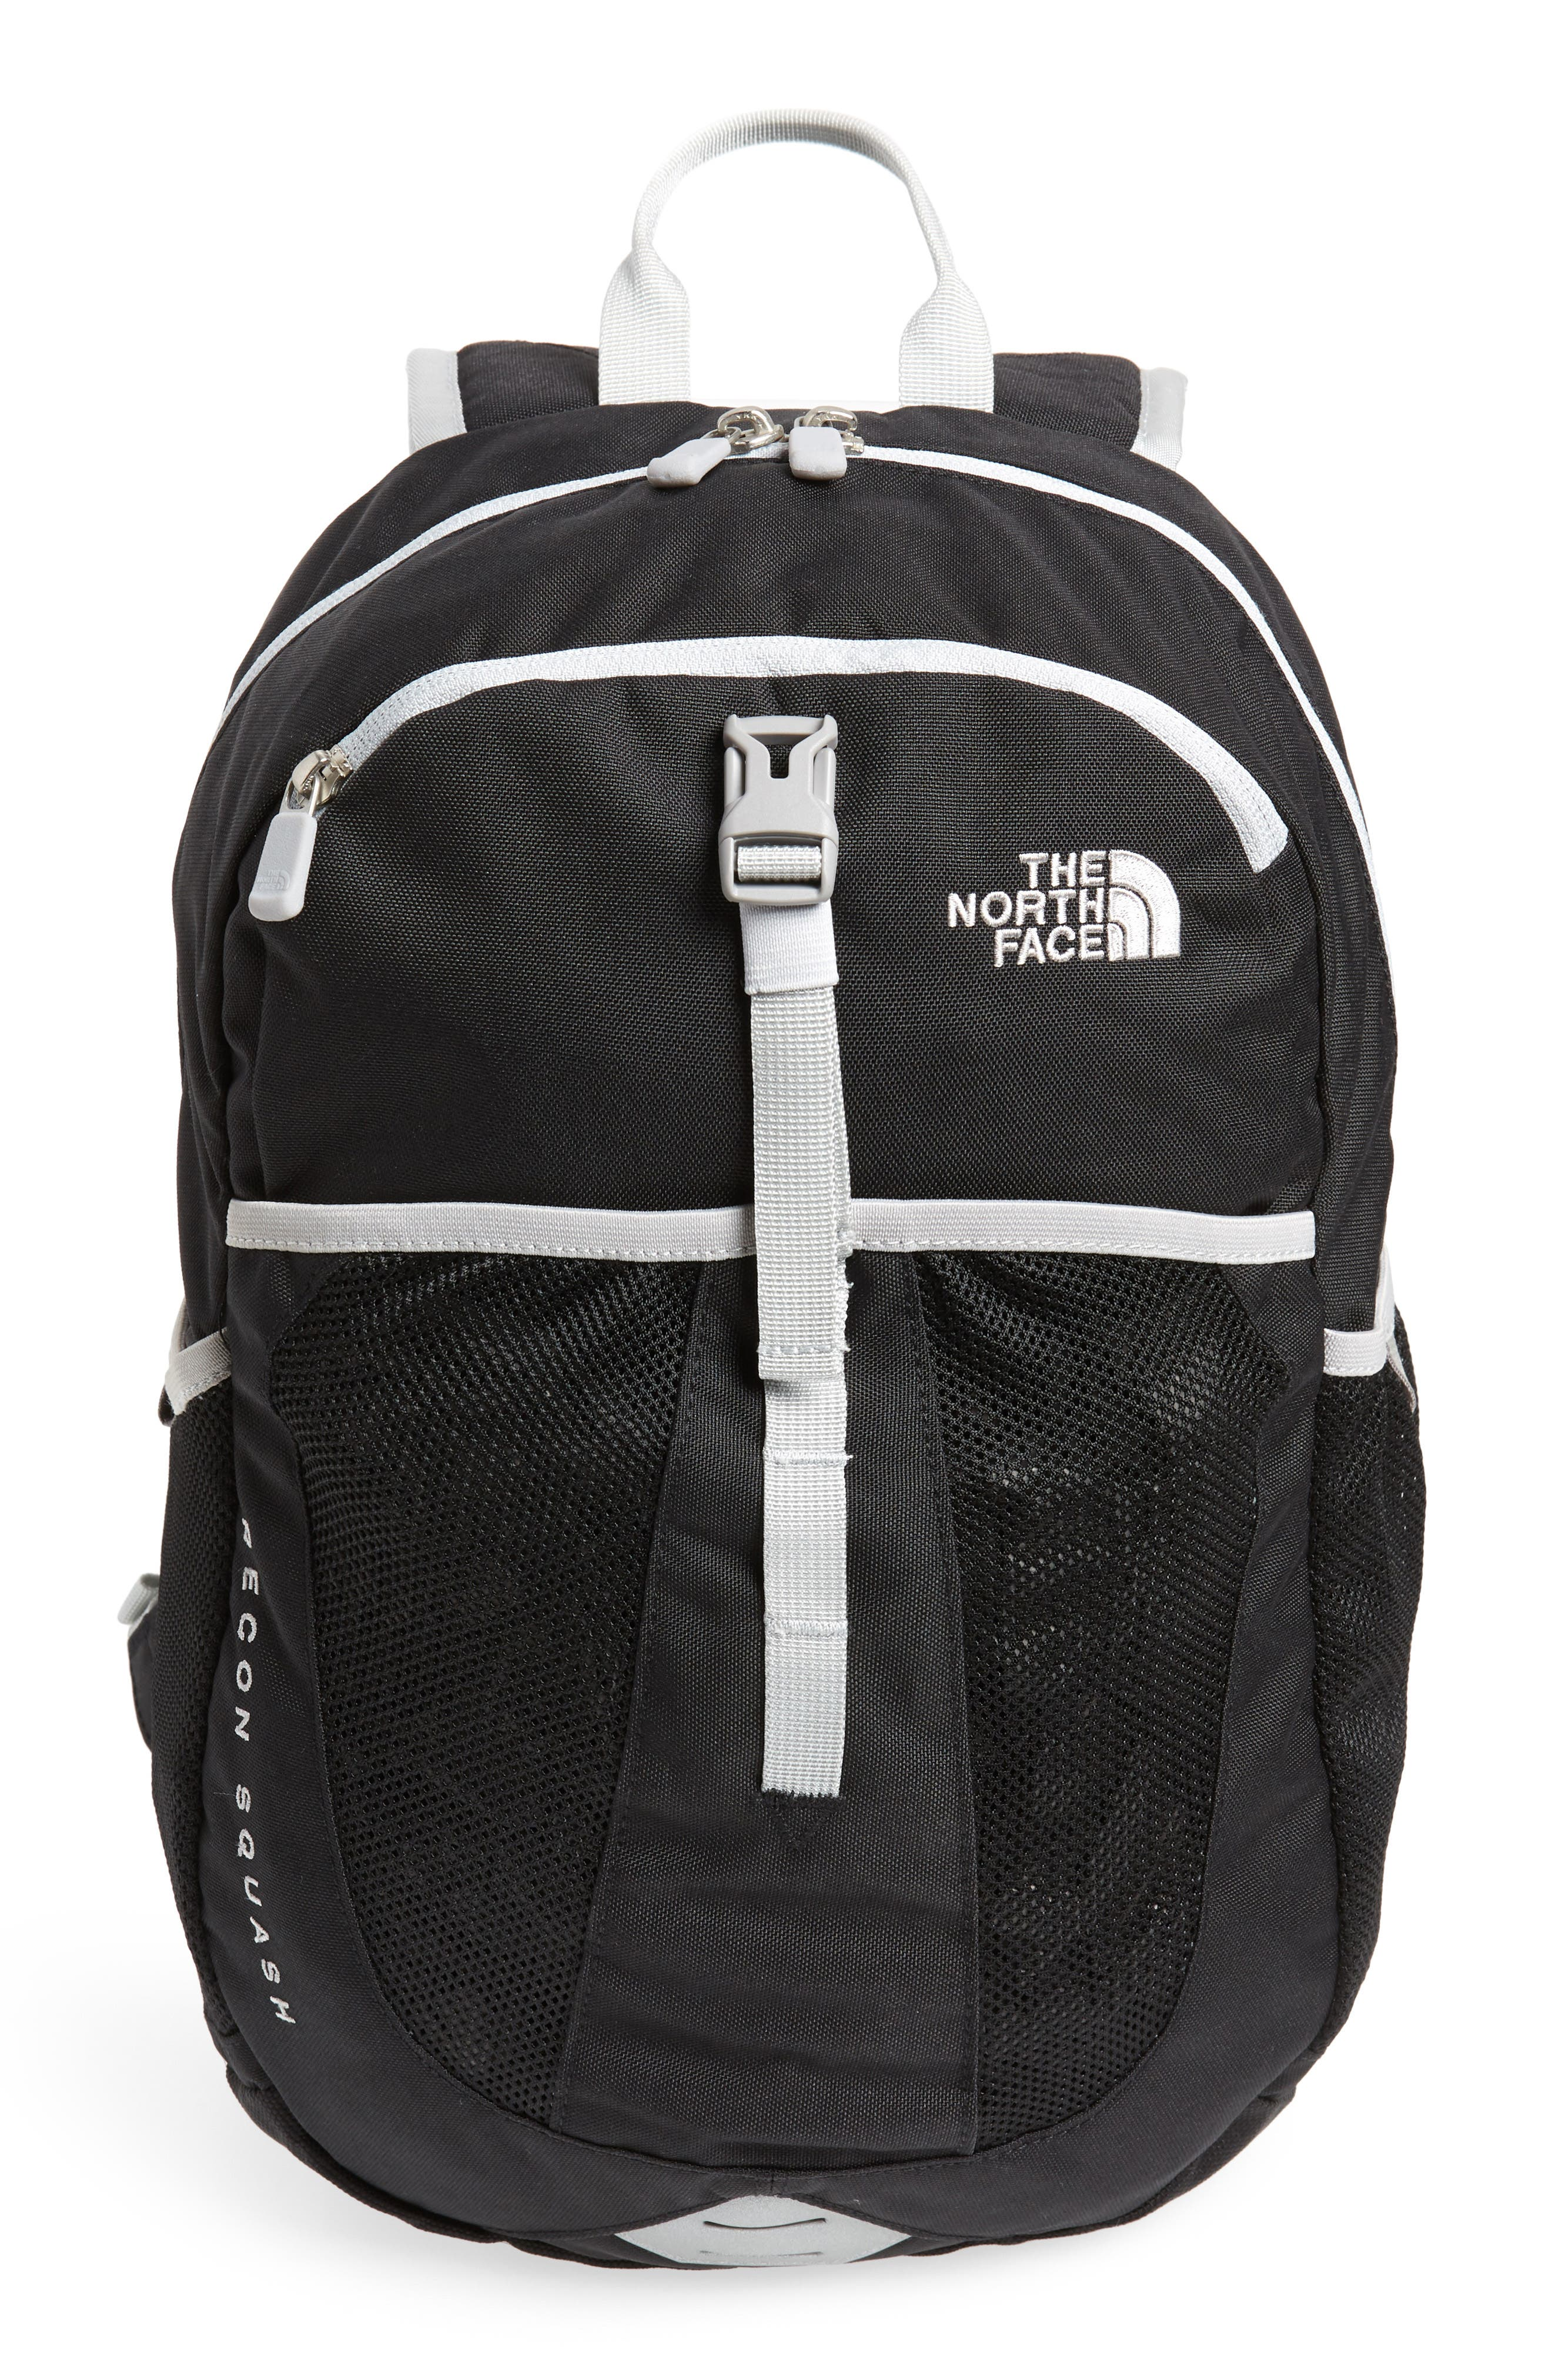 Recon Squash Backpack,                         Main,                         color, Tnf Black/ High Rise Grey